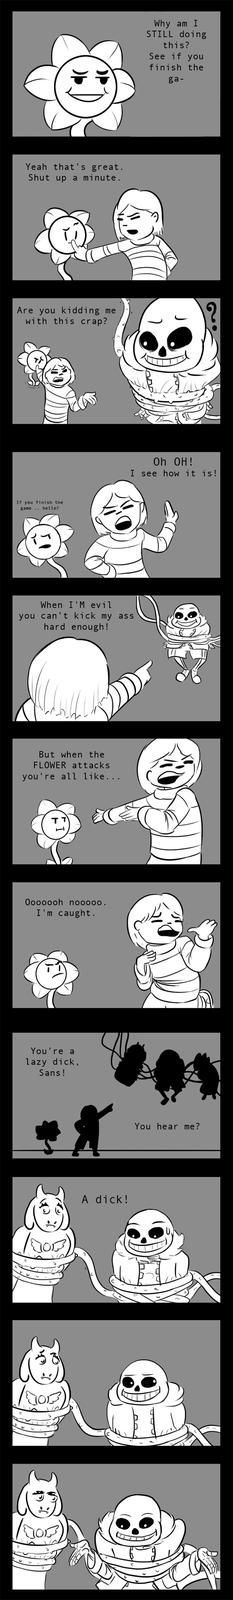 Undertale- Sans and Frisk. Even Frisk is sick of your crap, Sans. Undertale Undertale, Undertale Comic Funny, Flowey The Flower, Steven Universe, Toby Fox, Underswap, The Villain, Bad Timing, Funny Comics